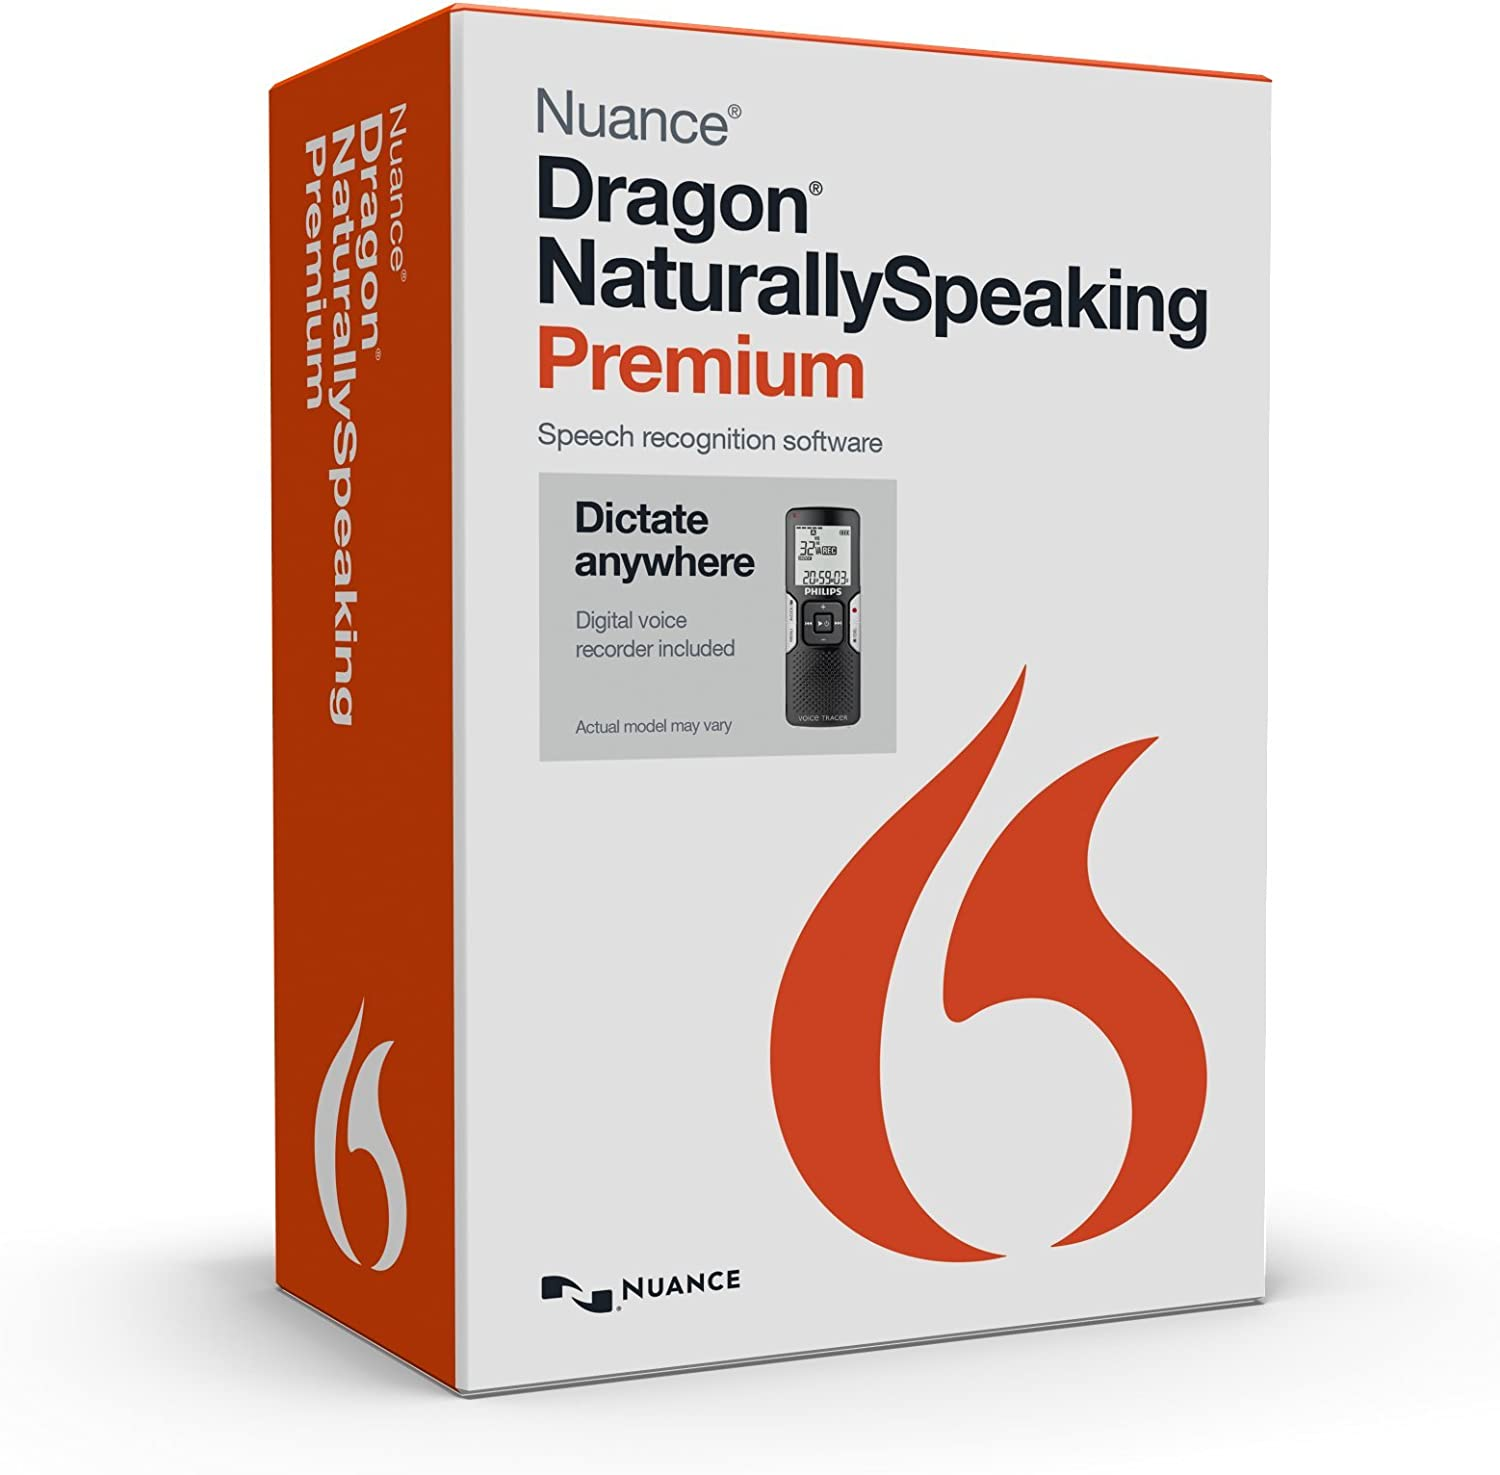 Dragon NaturallySpeaking Premium 13 with Digital Recorder (Discontinued) 71os0A2BkRmLSL1500_